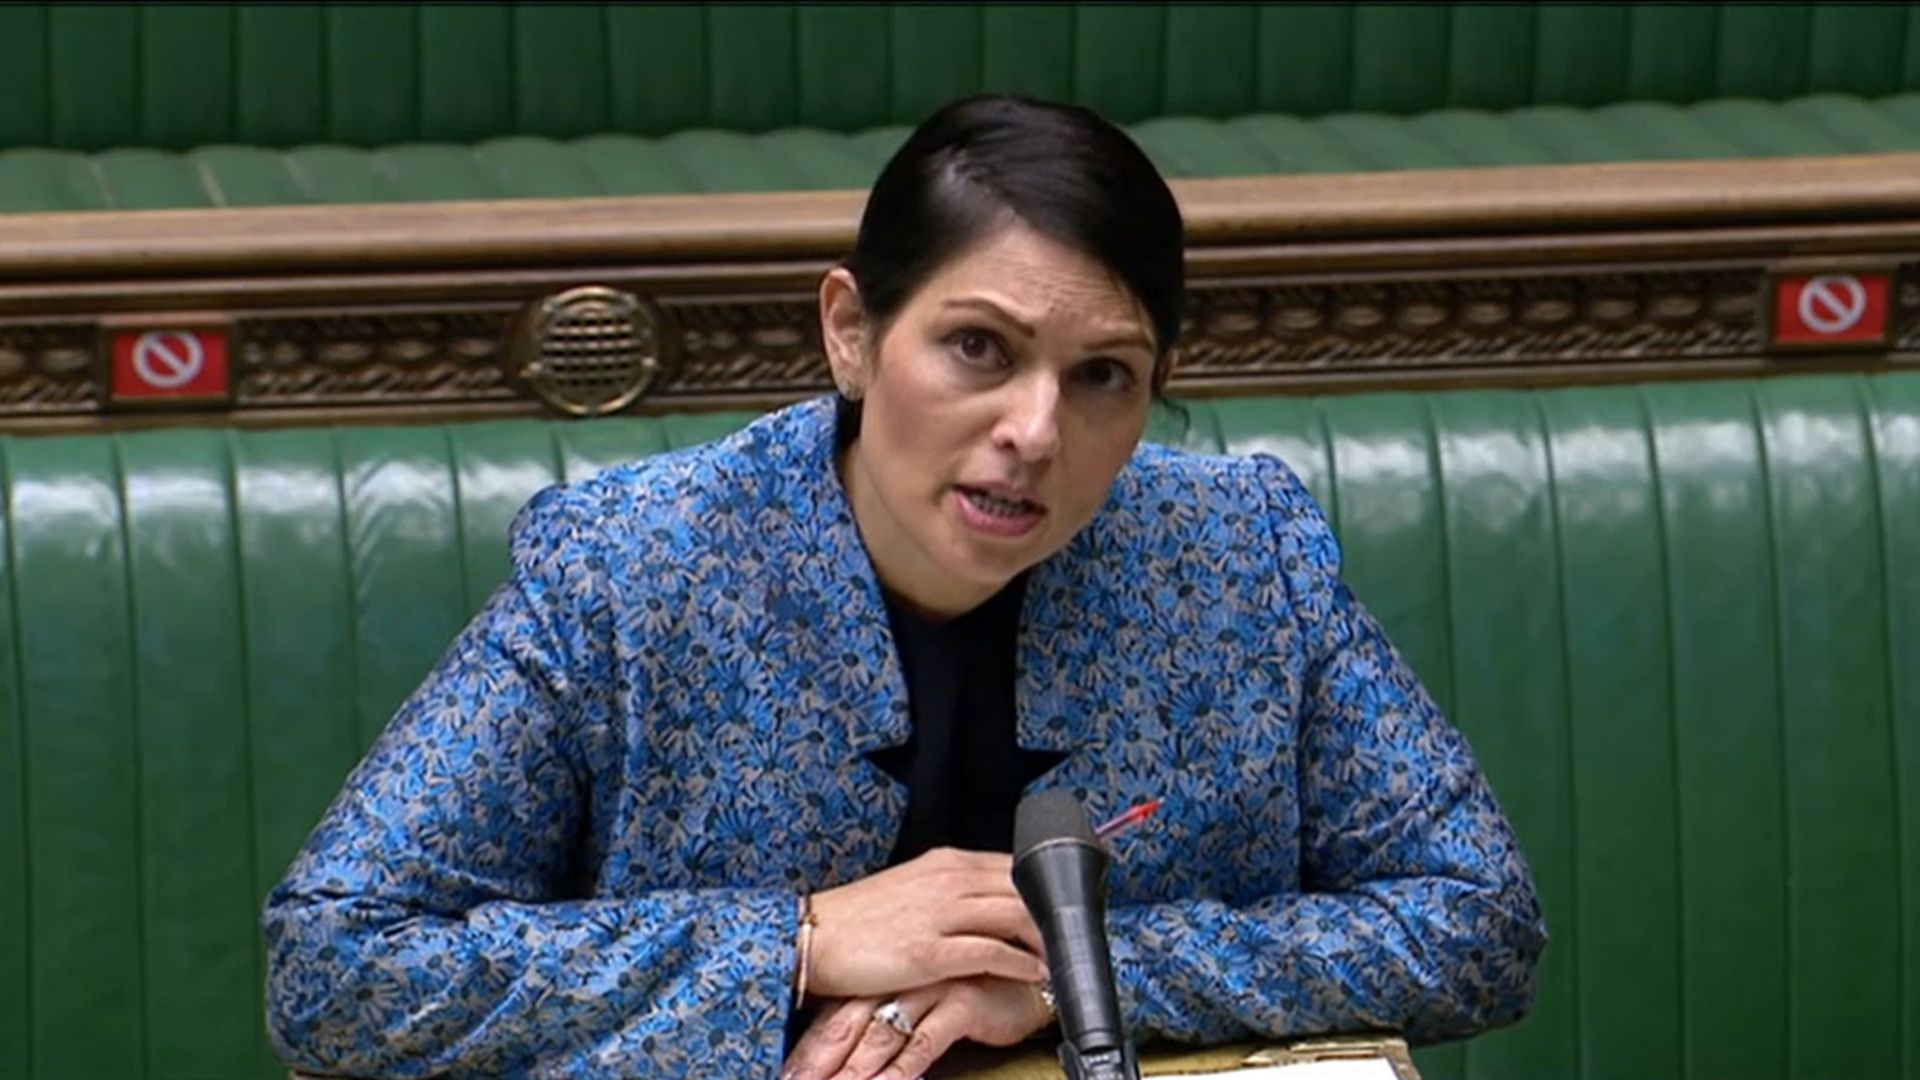 Home secretary Priti Patel speaking in the House of Commons - Credit: PA